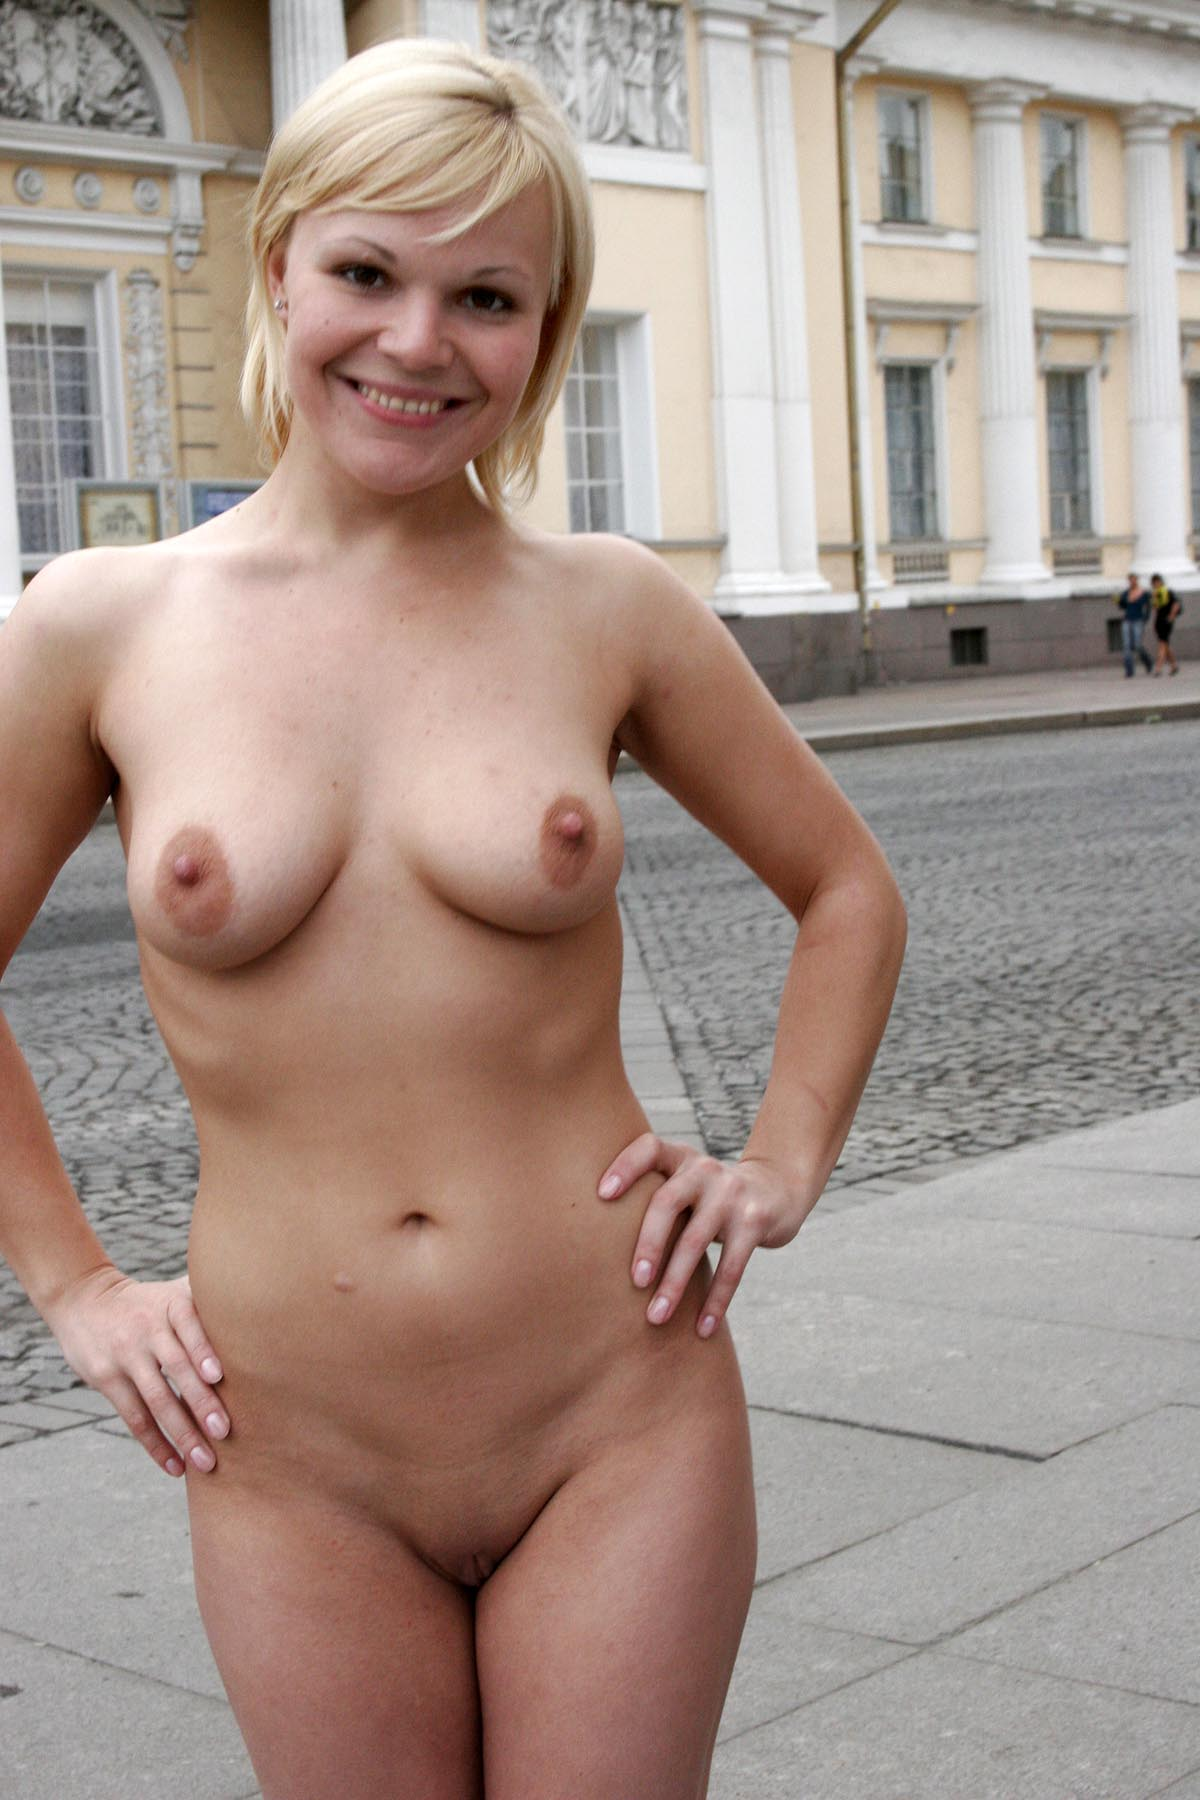 short hair girl Blonde naked